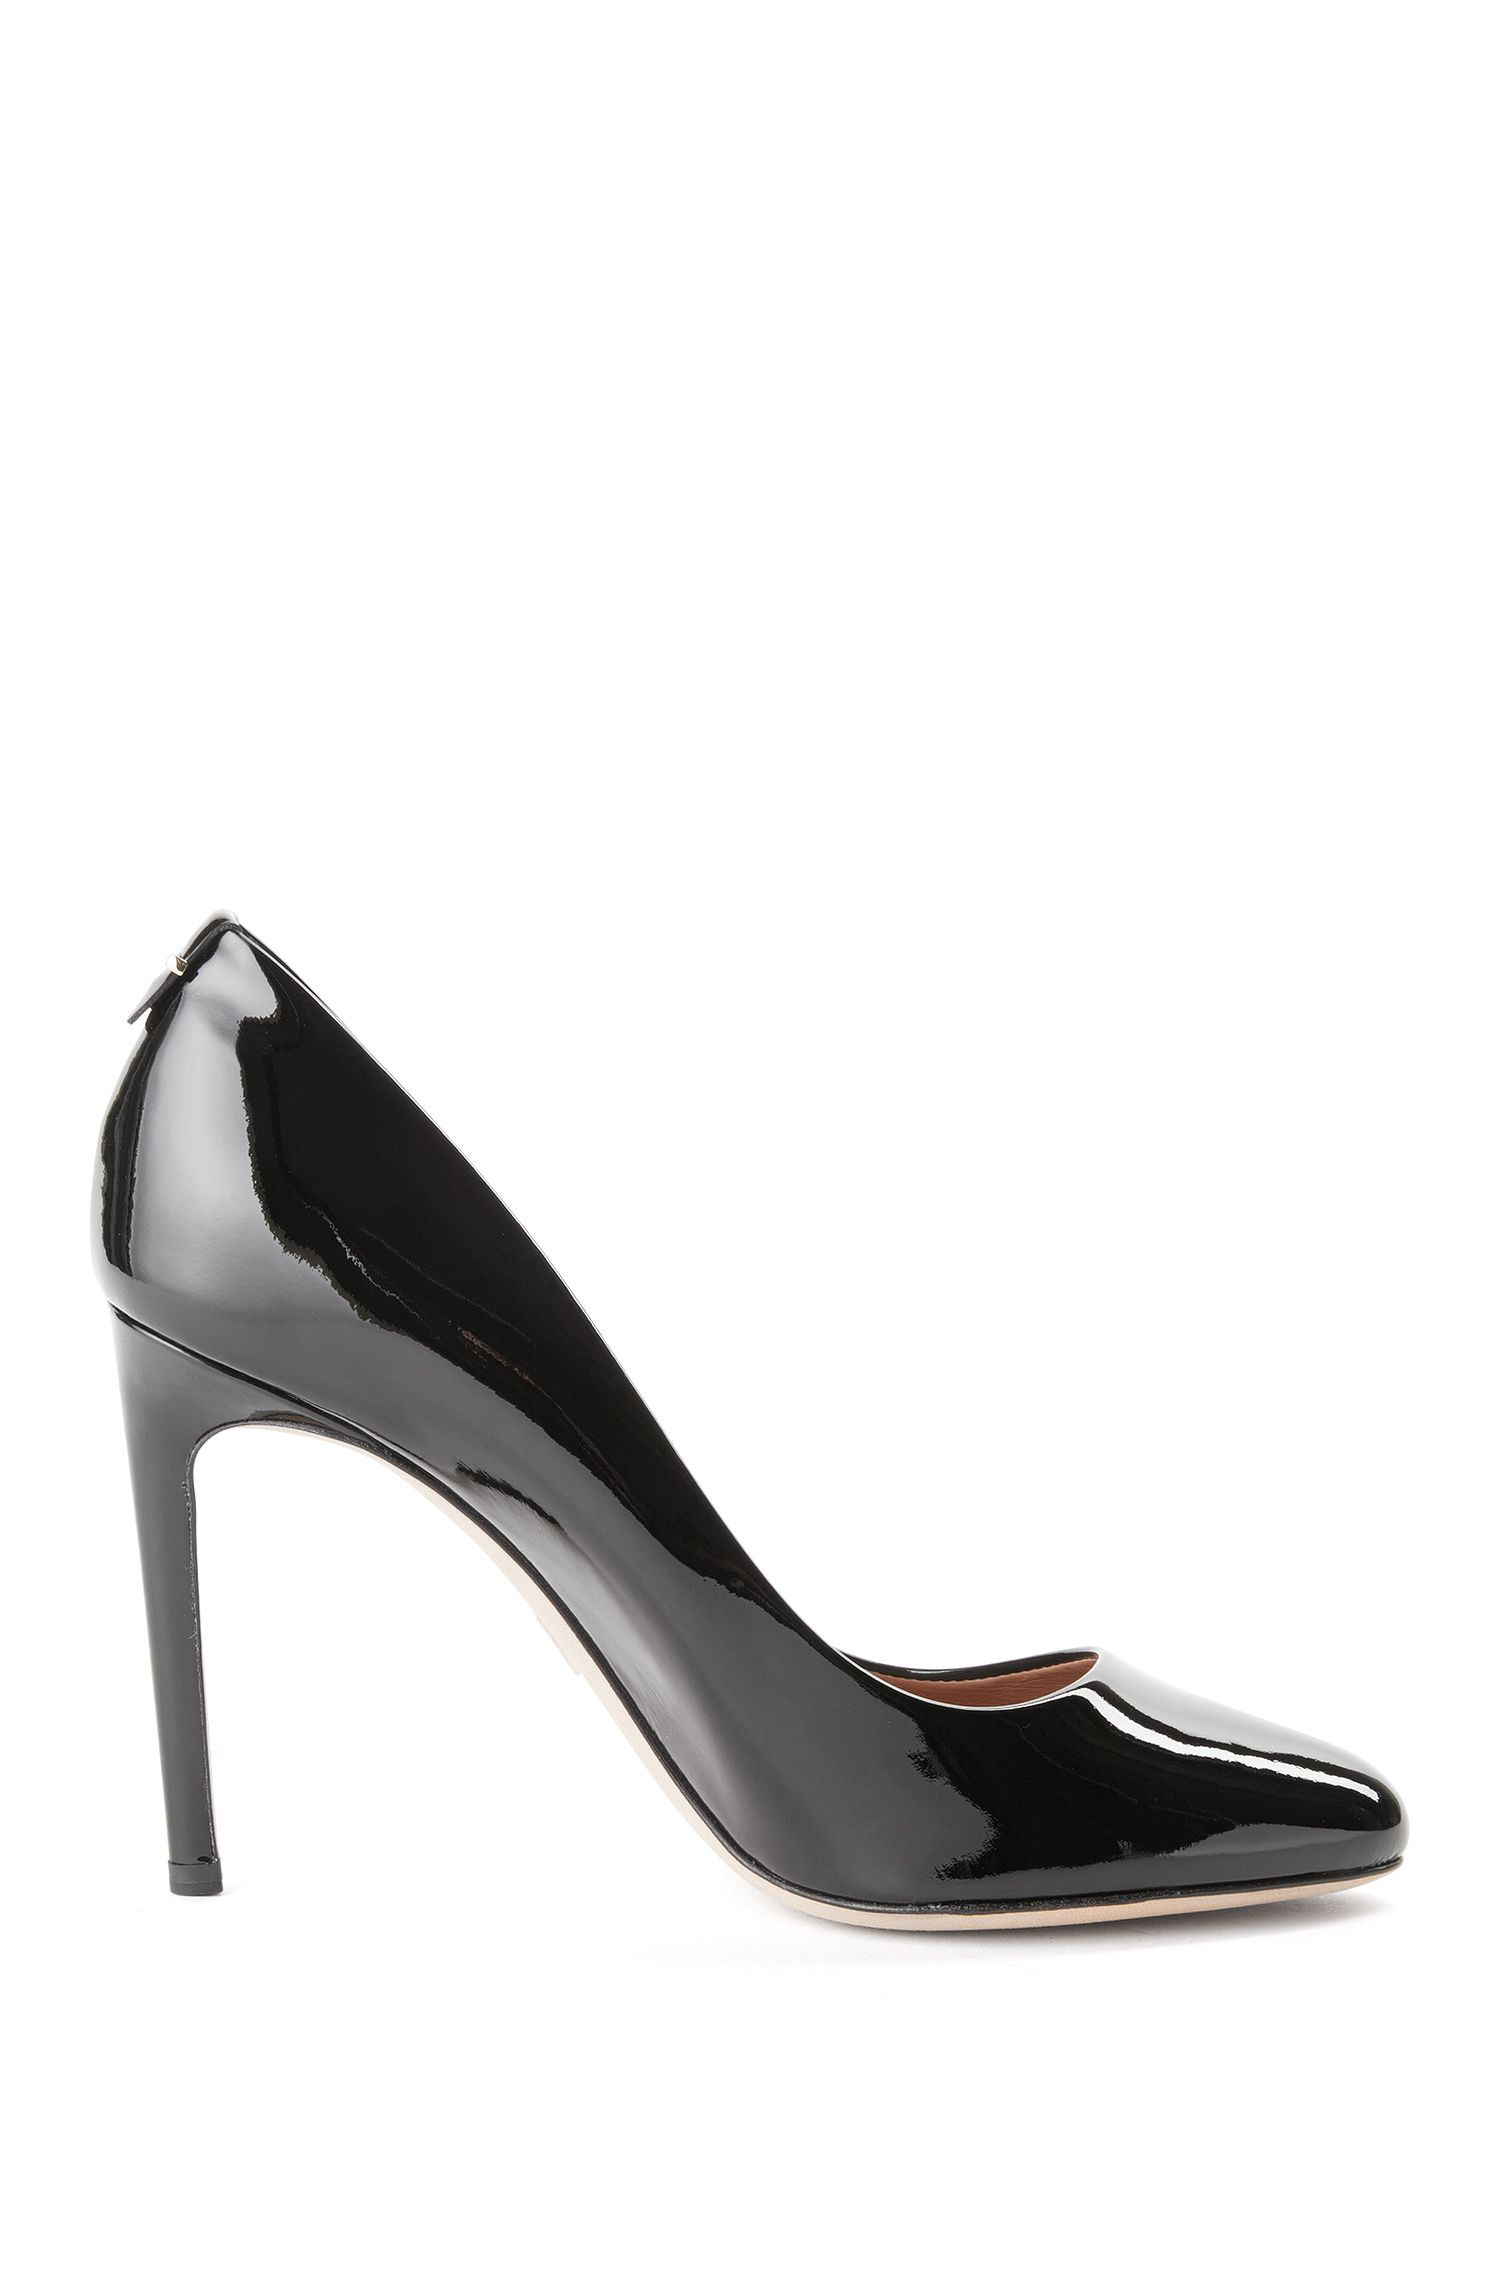 'Staple R' | Patent Leather Pumps